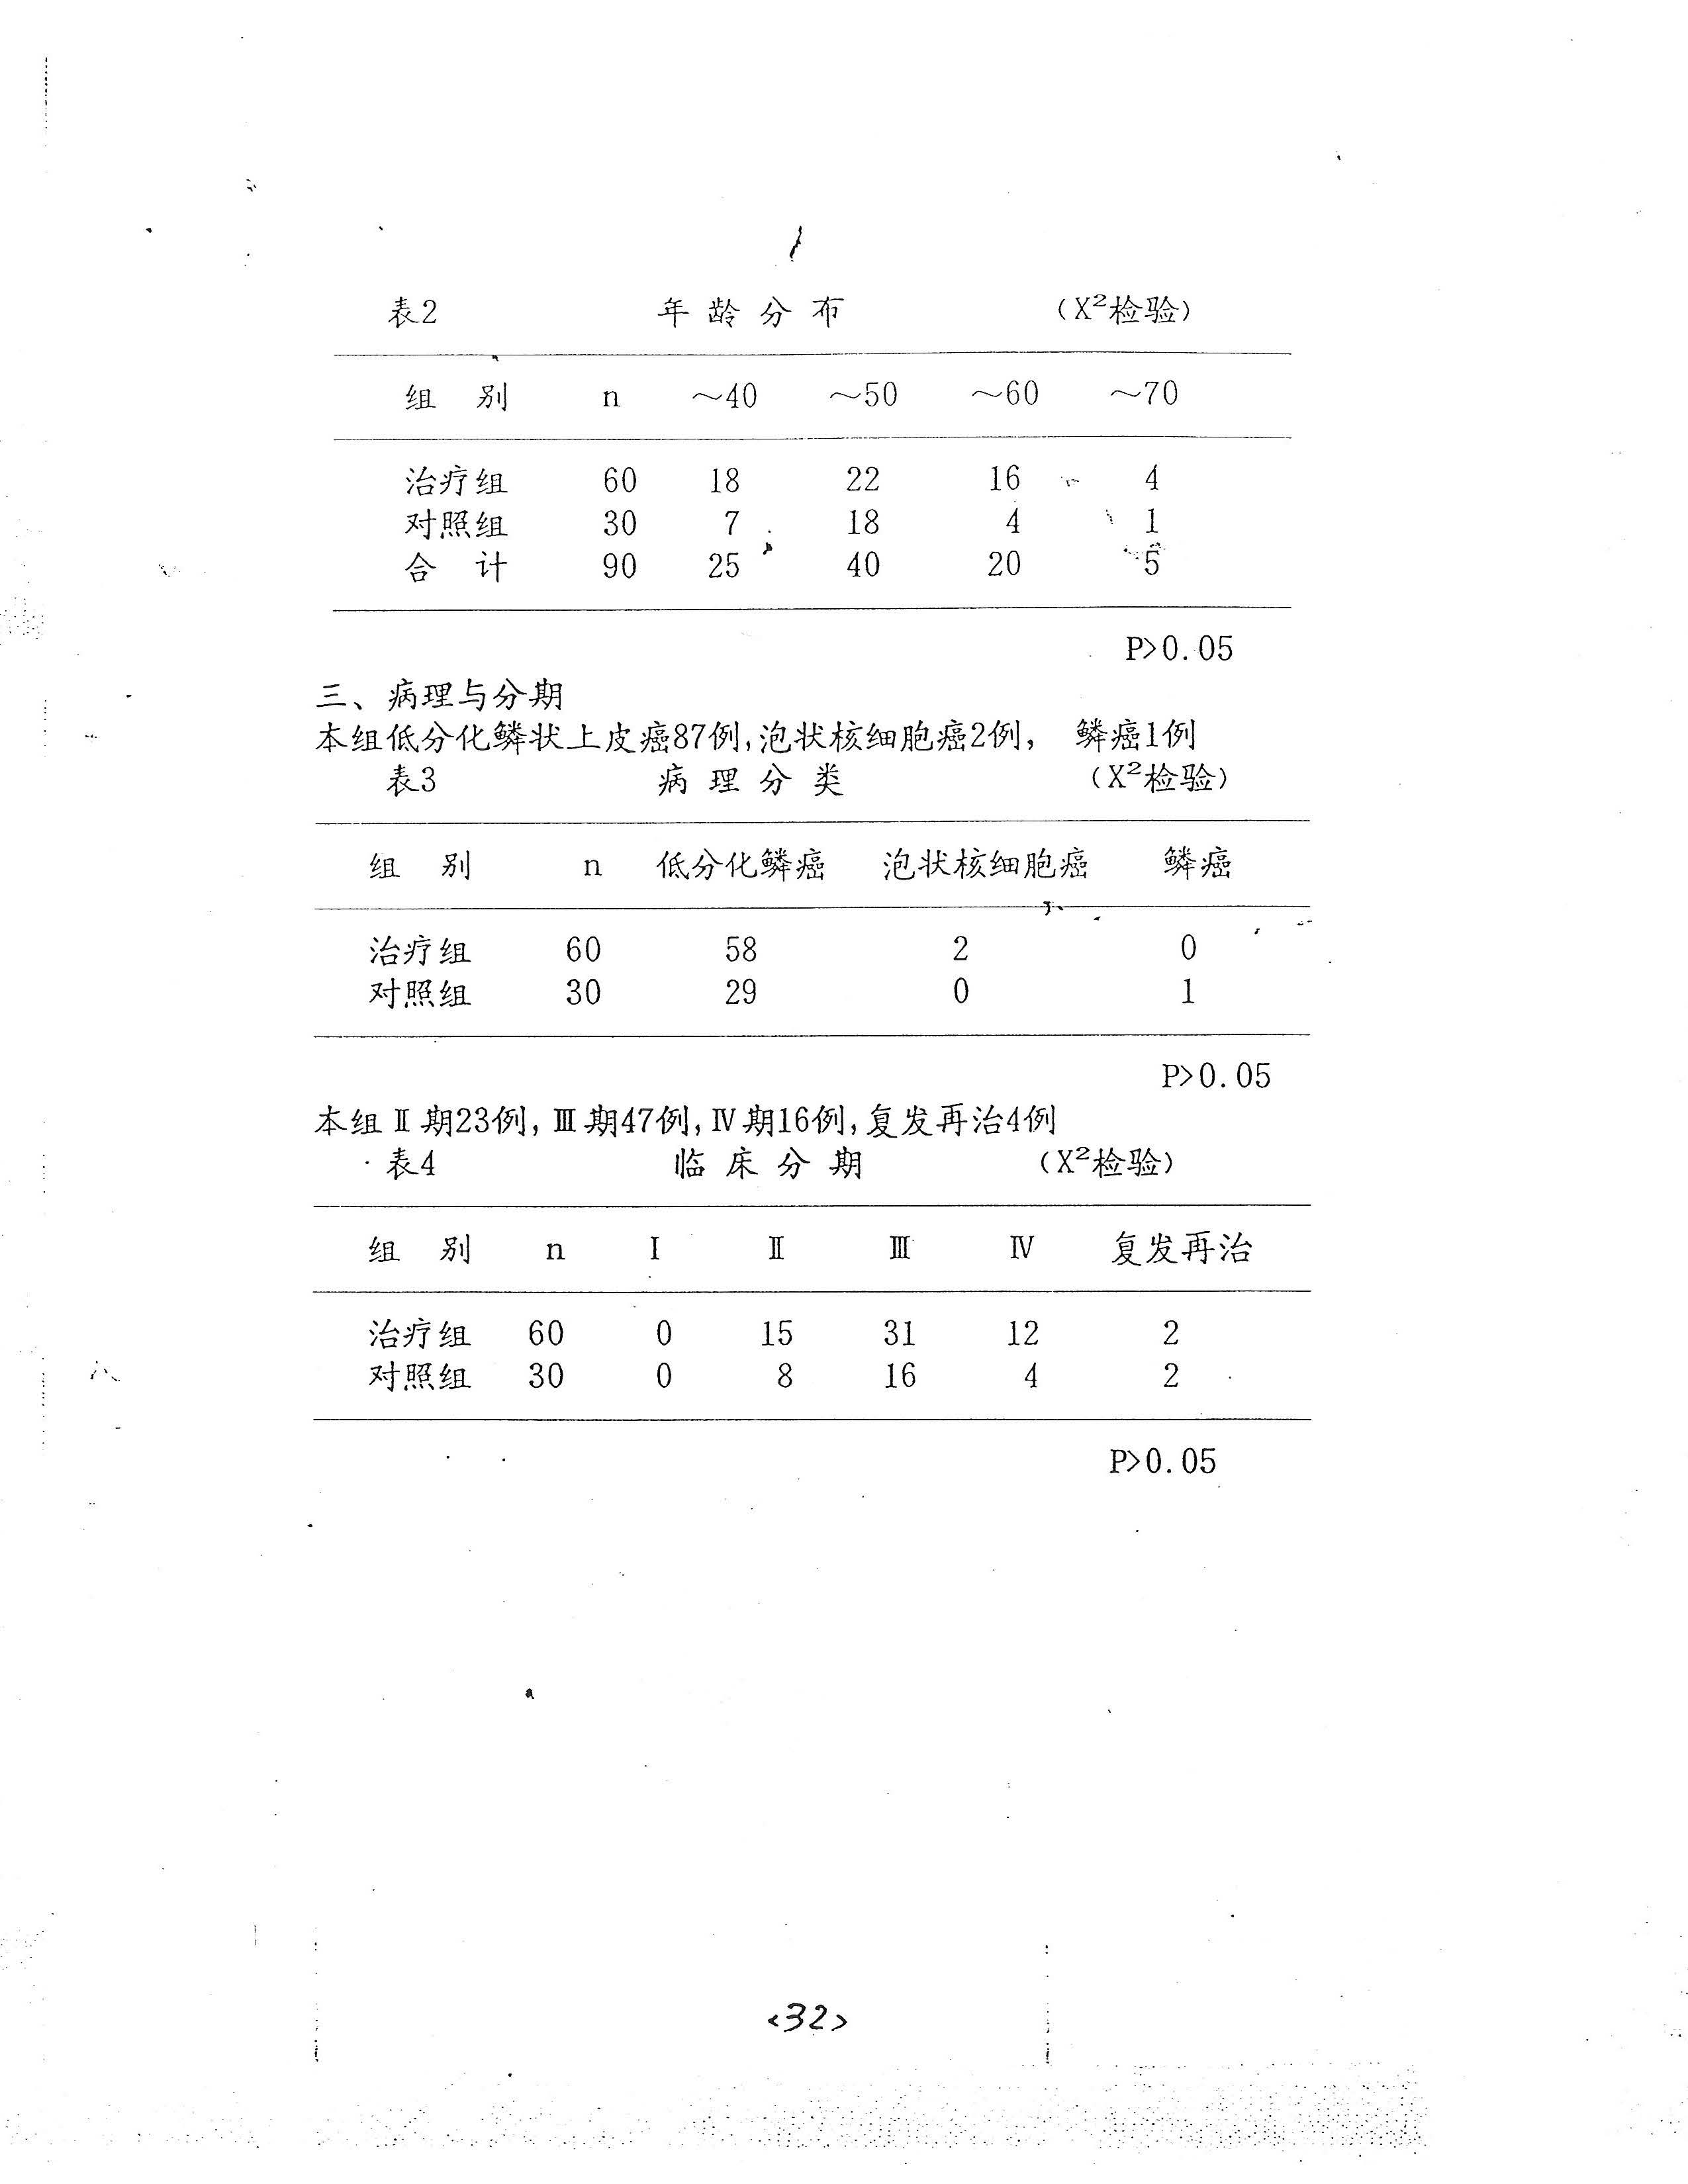 clinical_Page_34